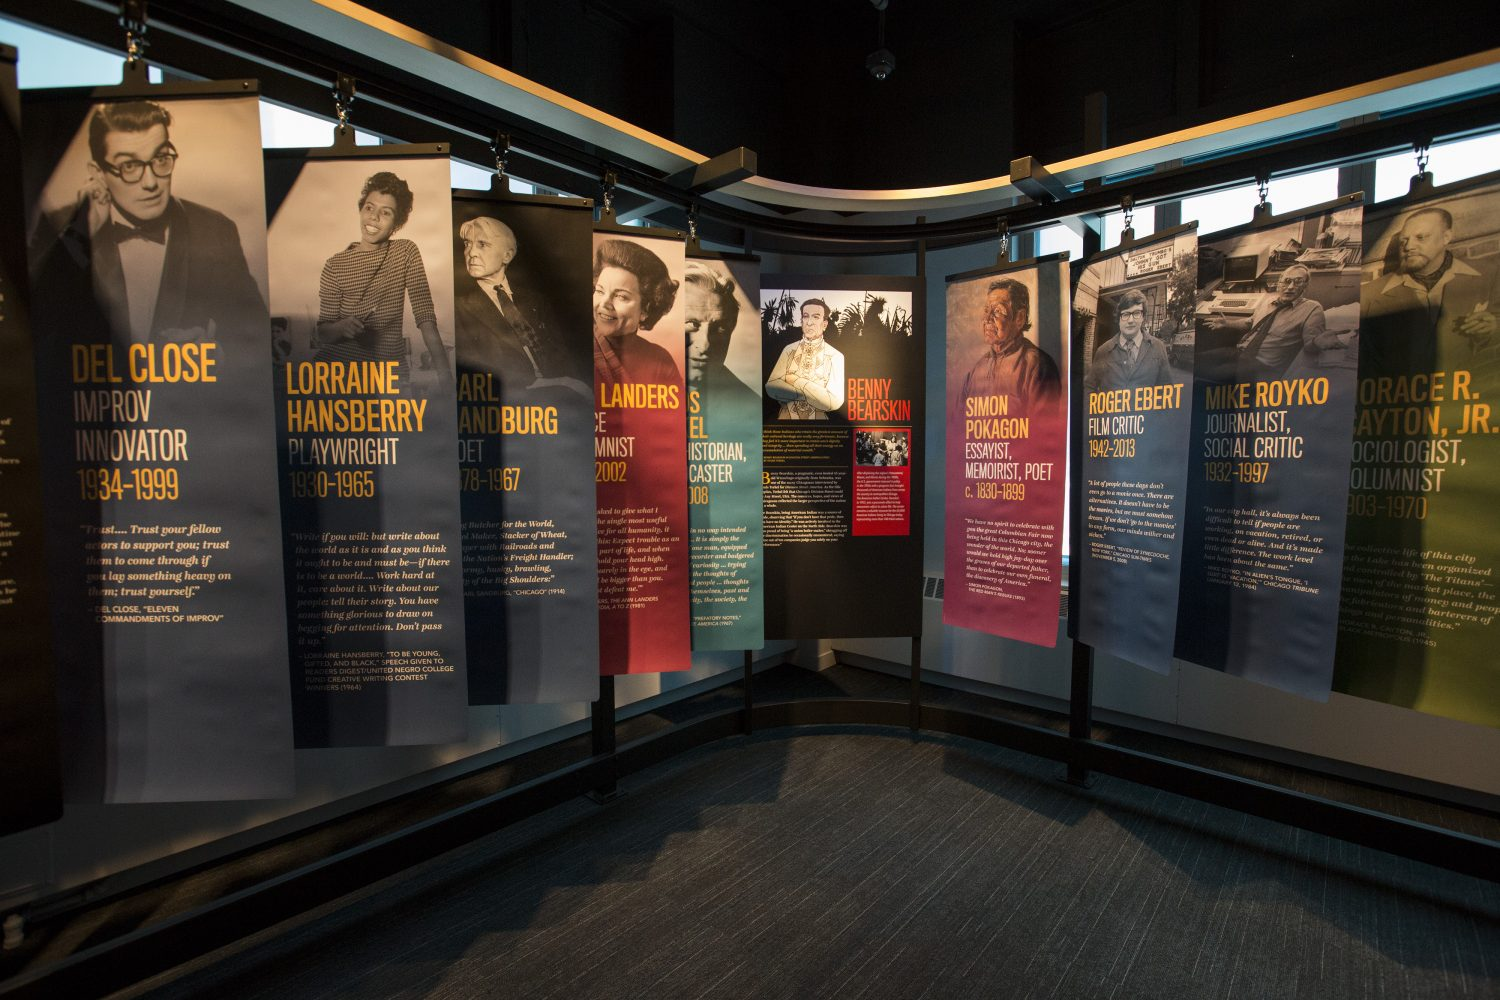 The American Writers Museum has just opened in downtown Chicago. Image: American Writers Museum